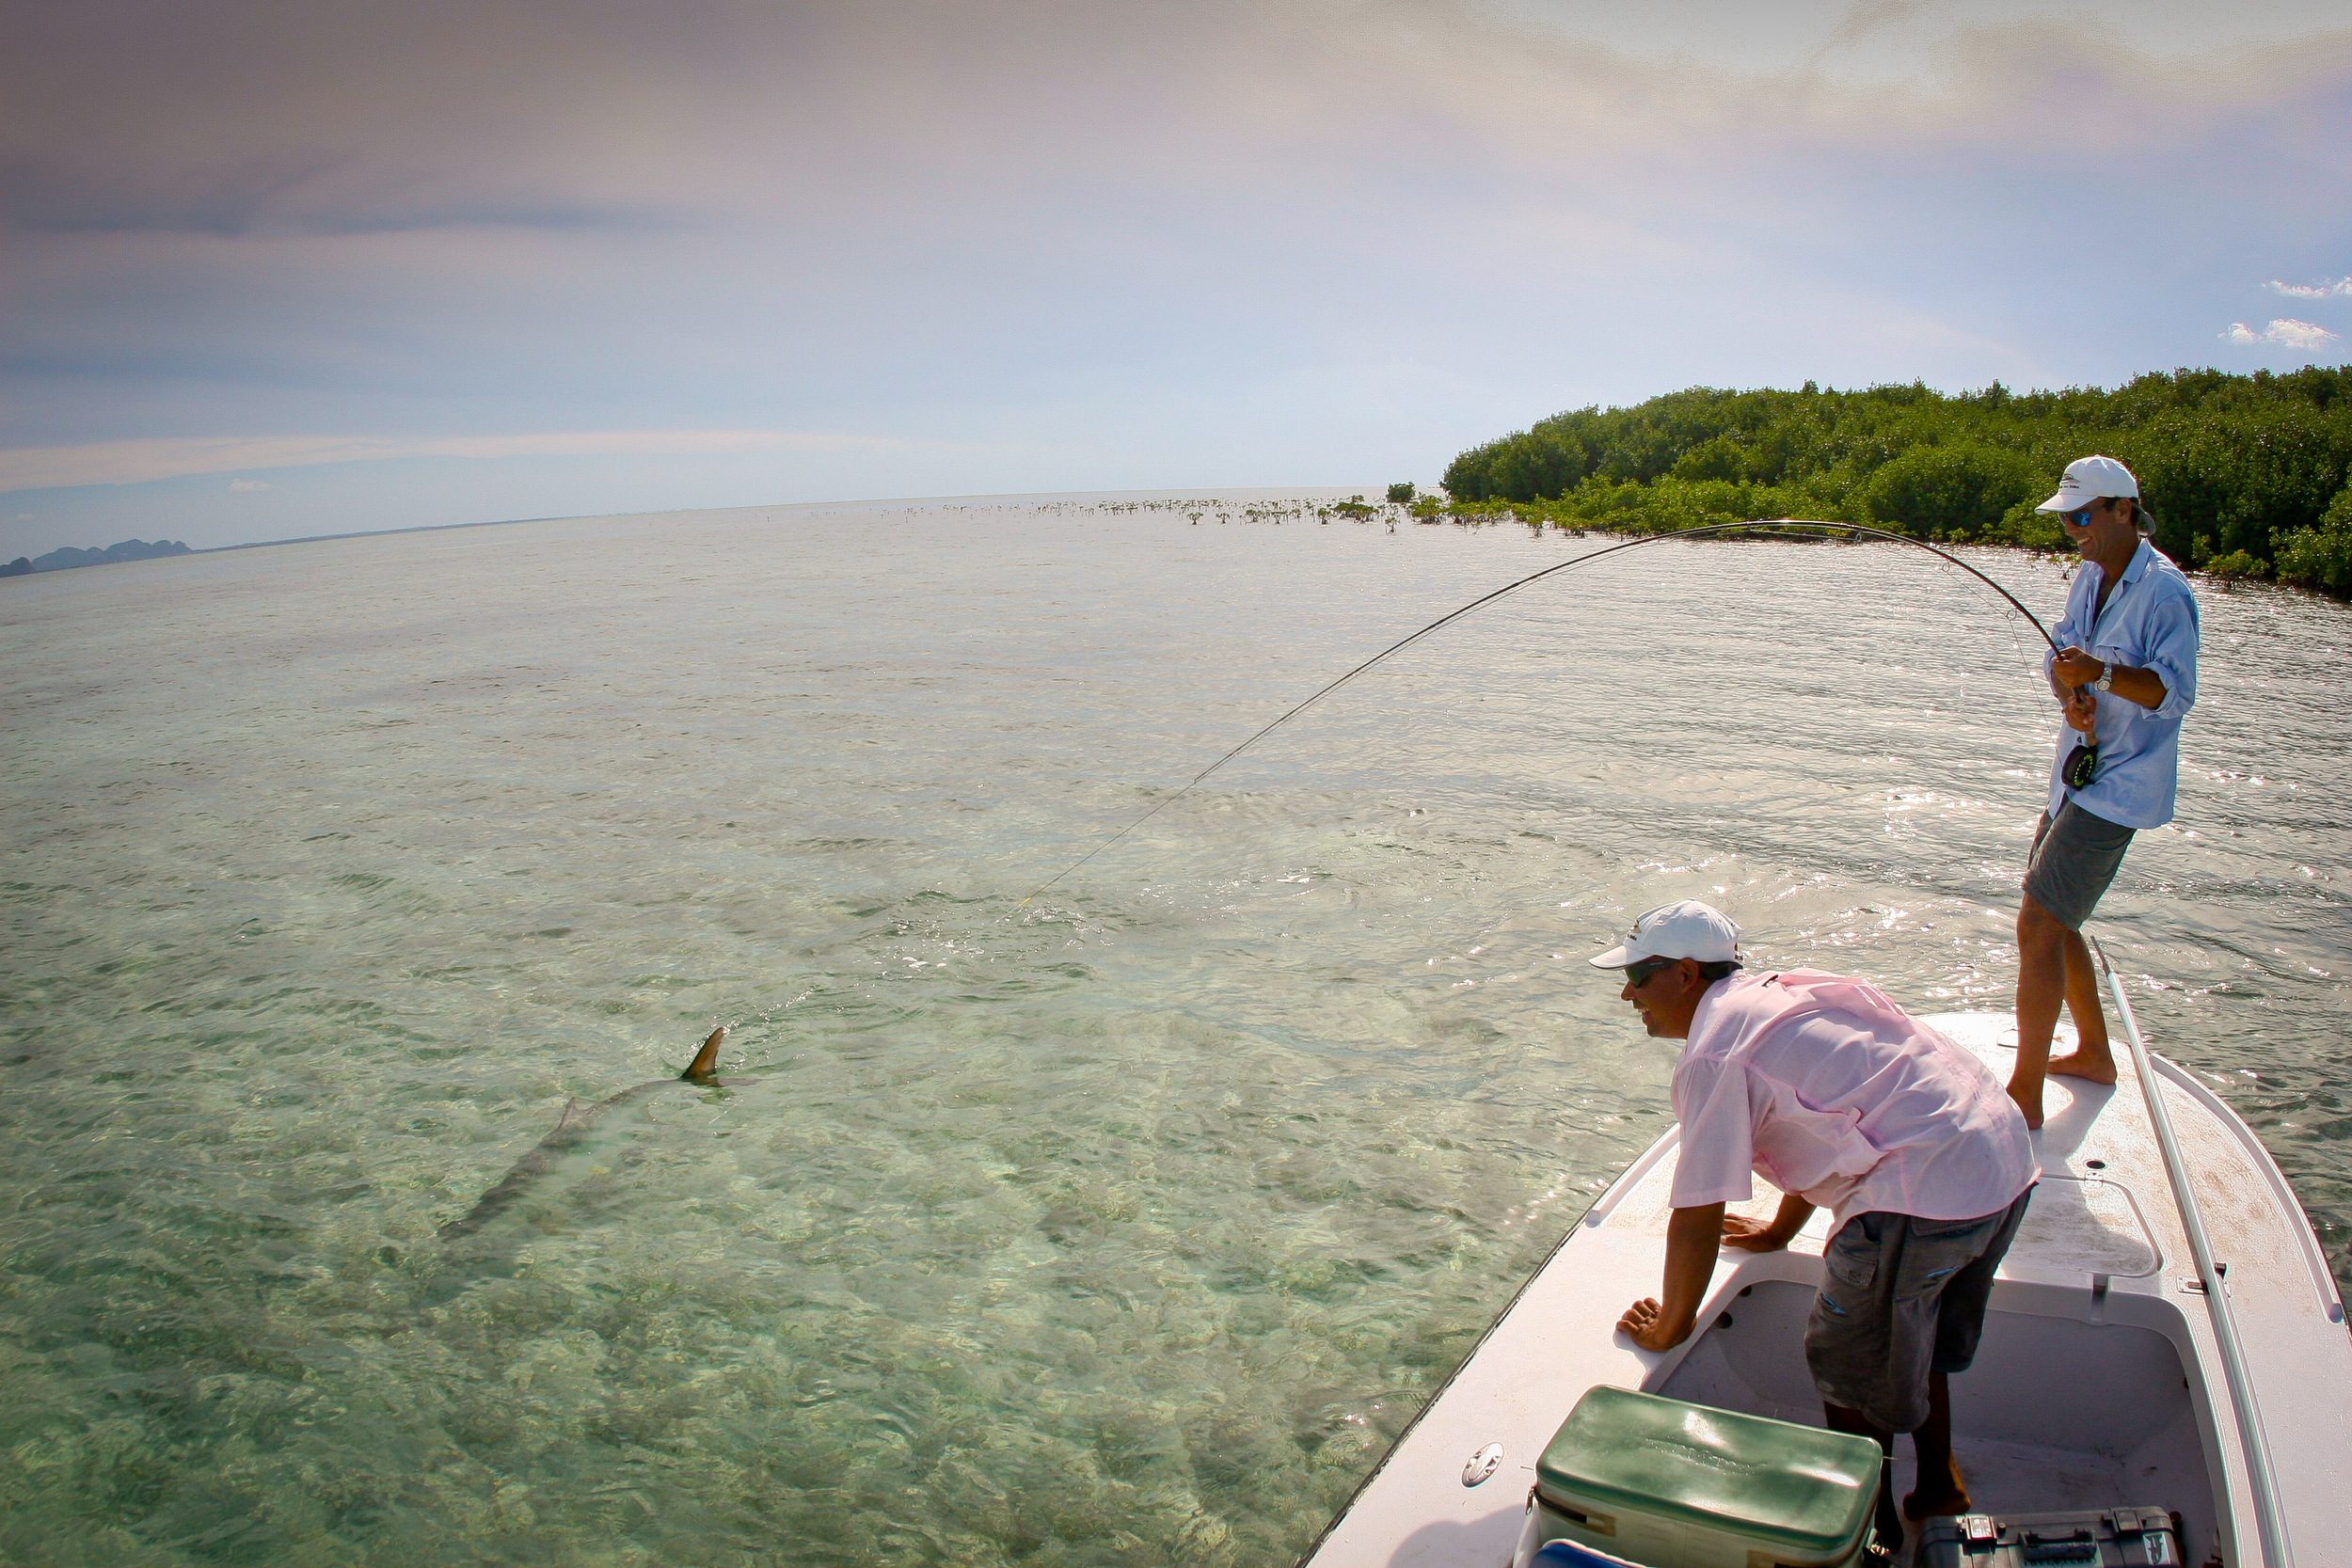 Fly Fishing for Tarpon, Isla de la Juventud, Cuba